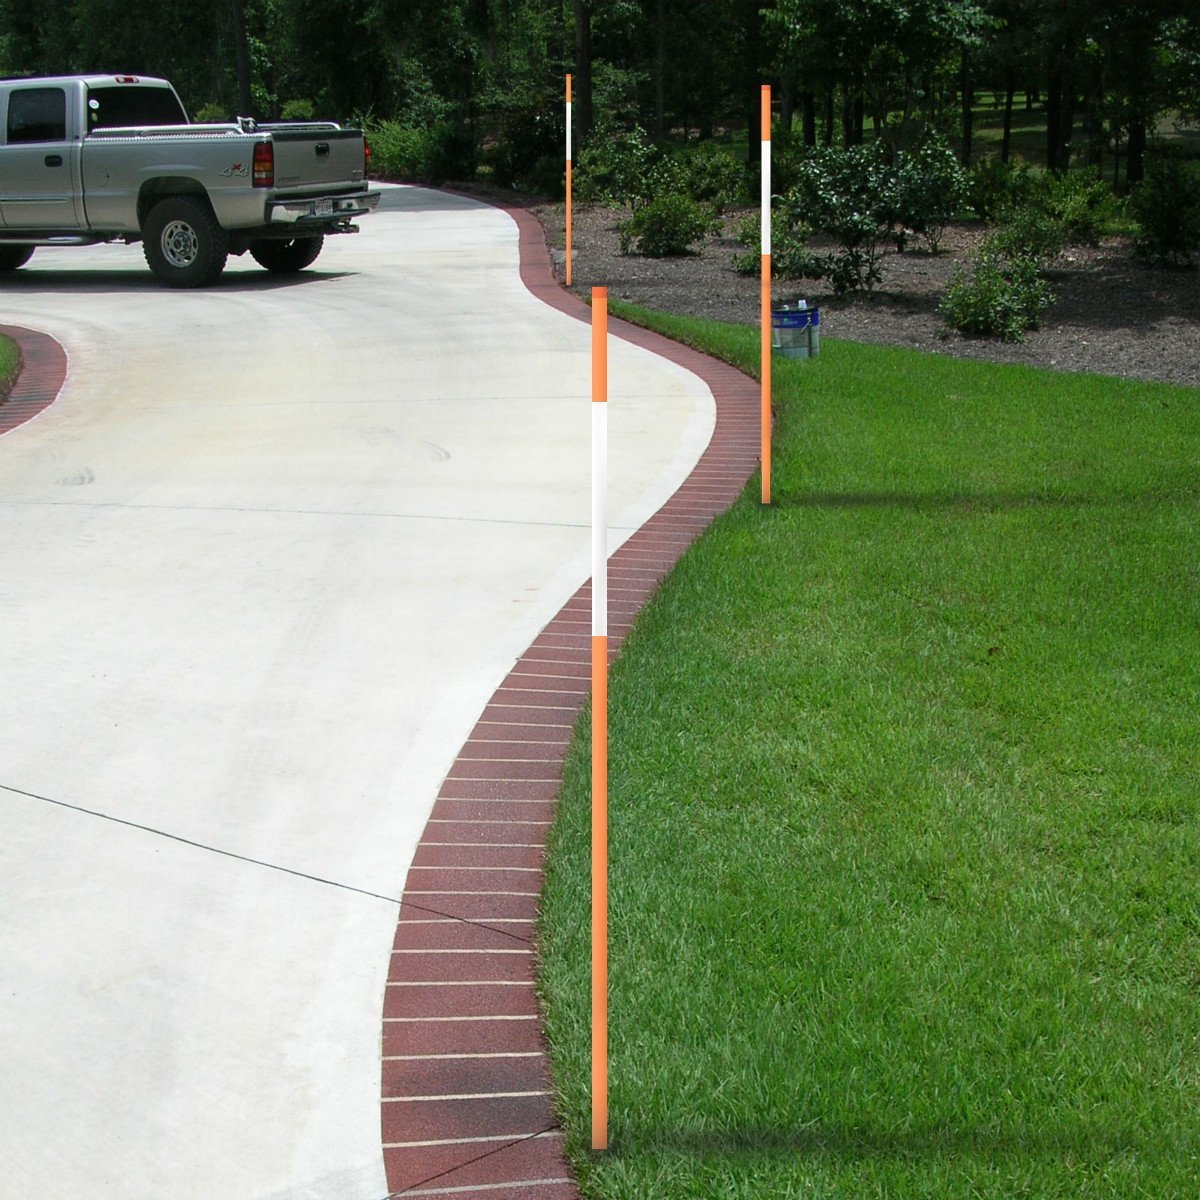 FiberMarker 60-Inch Reflective Driveway Markers Orange 20-Pack 5/16-Inch Dia Solid Driveway Poles for Easy Visibility at Night ... by FiberMarker (Image #5)